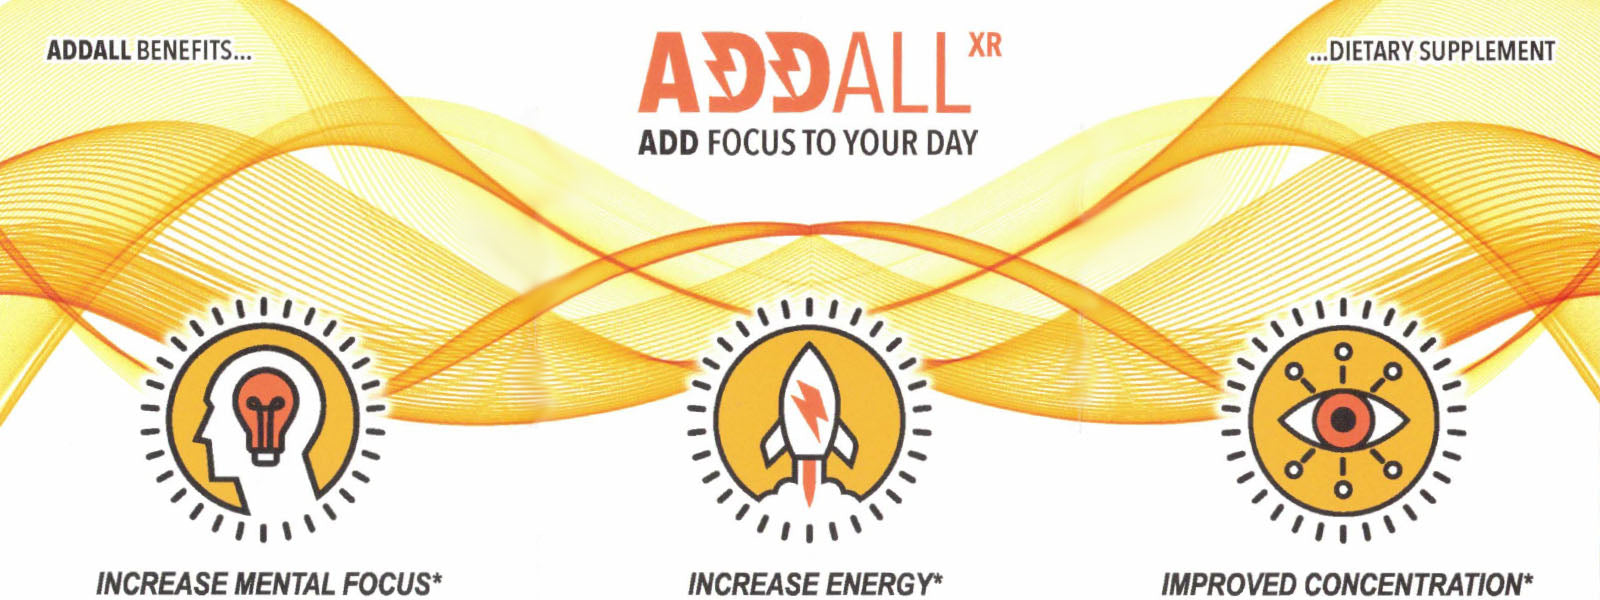 Addall - Add Focus To Your Day - Best Price Online at Marketplace Vape